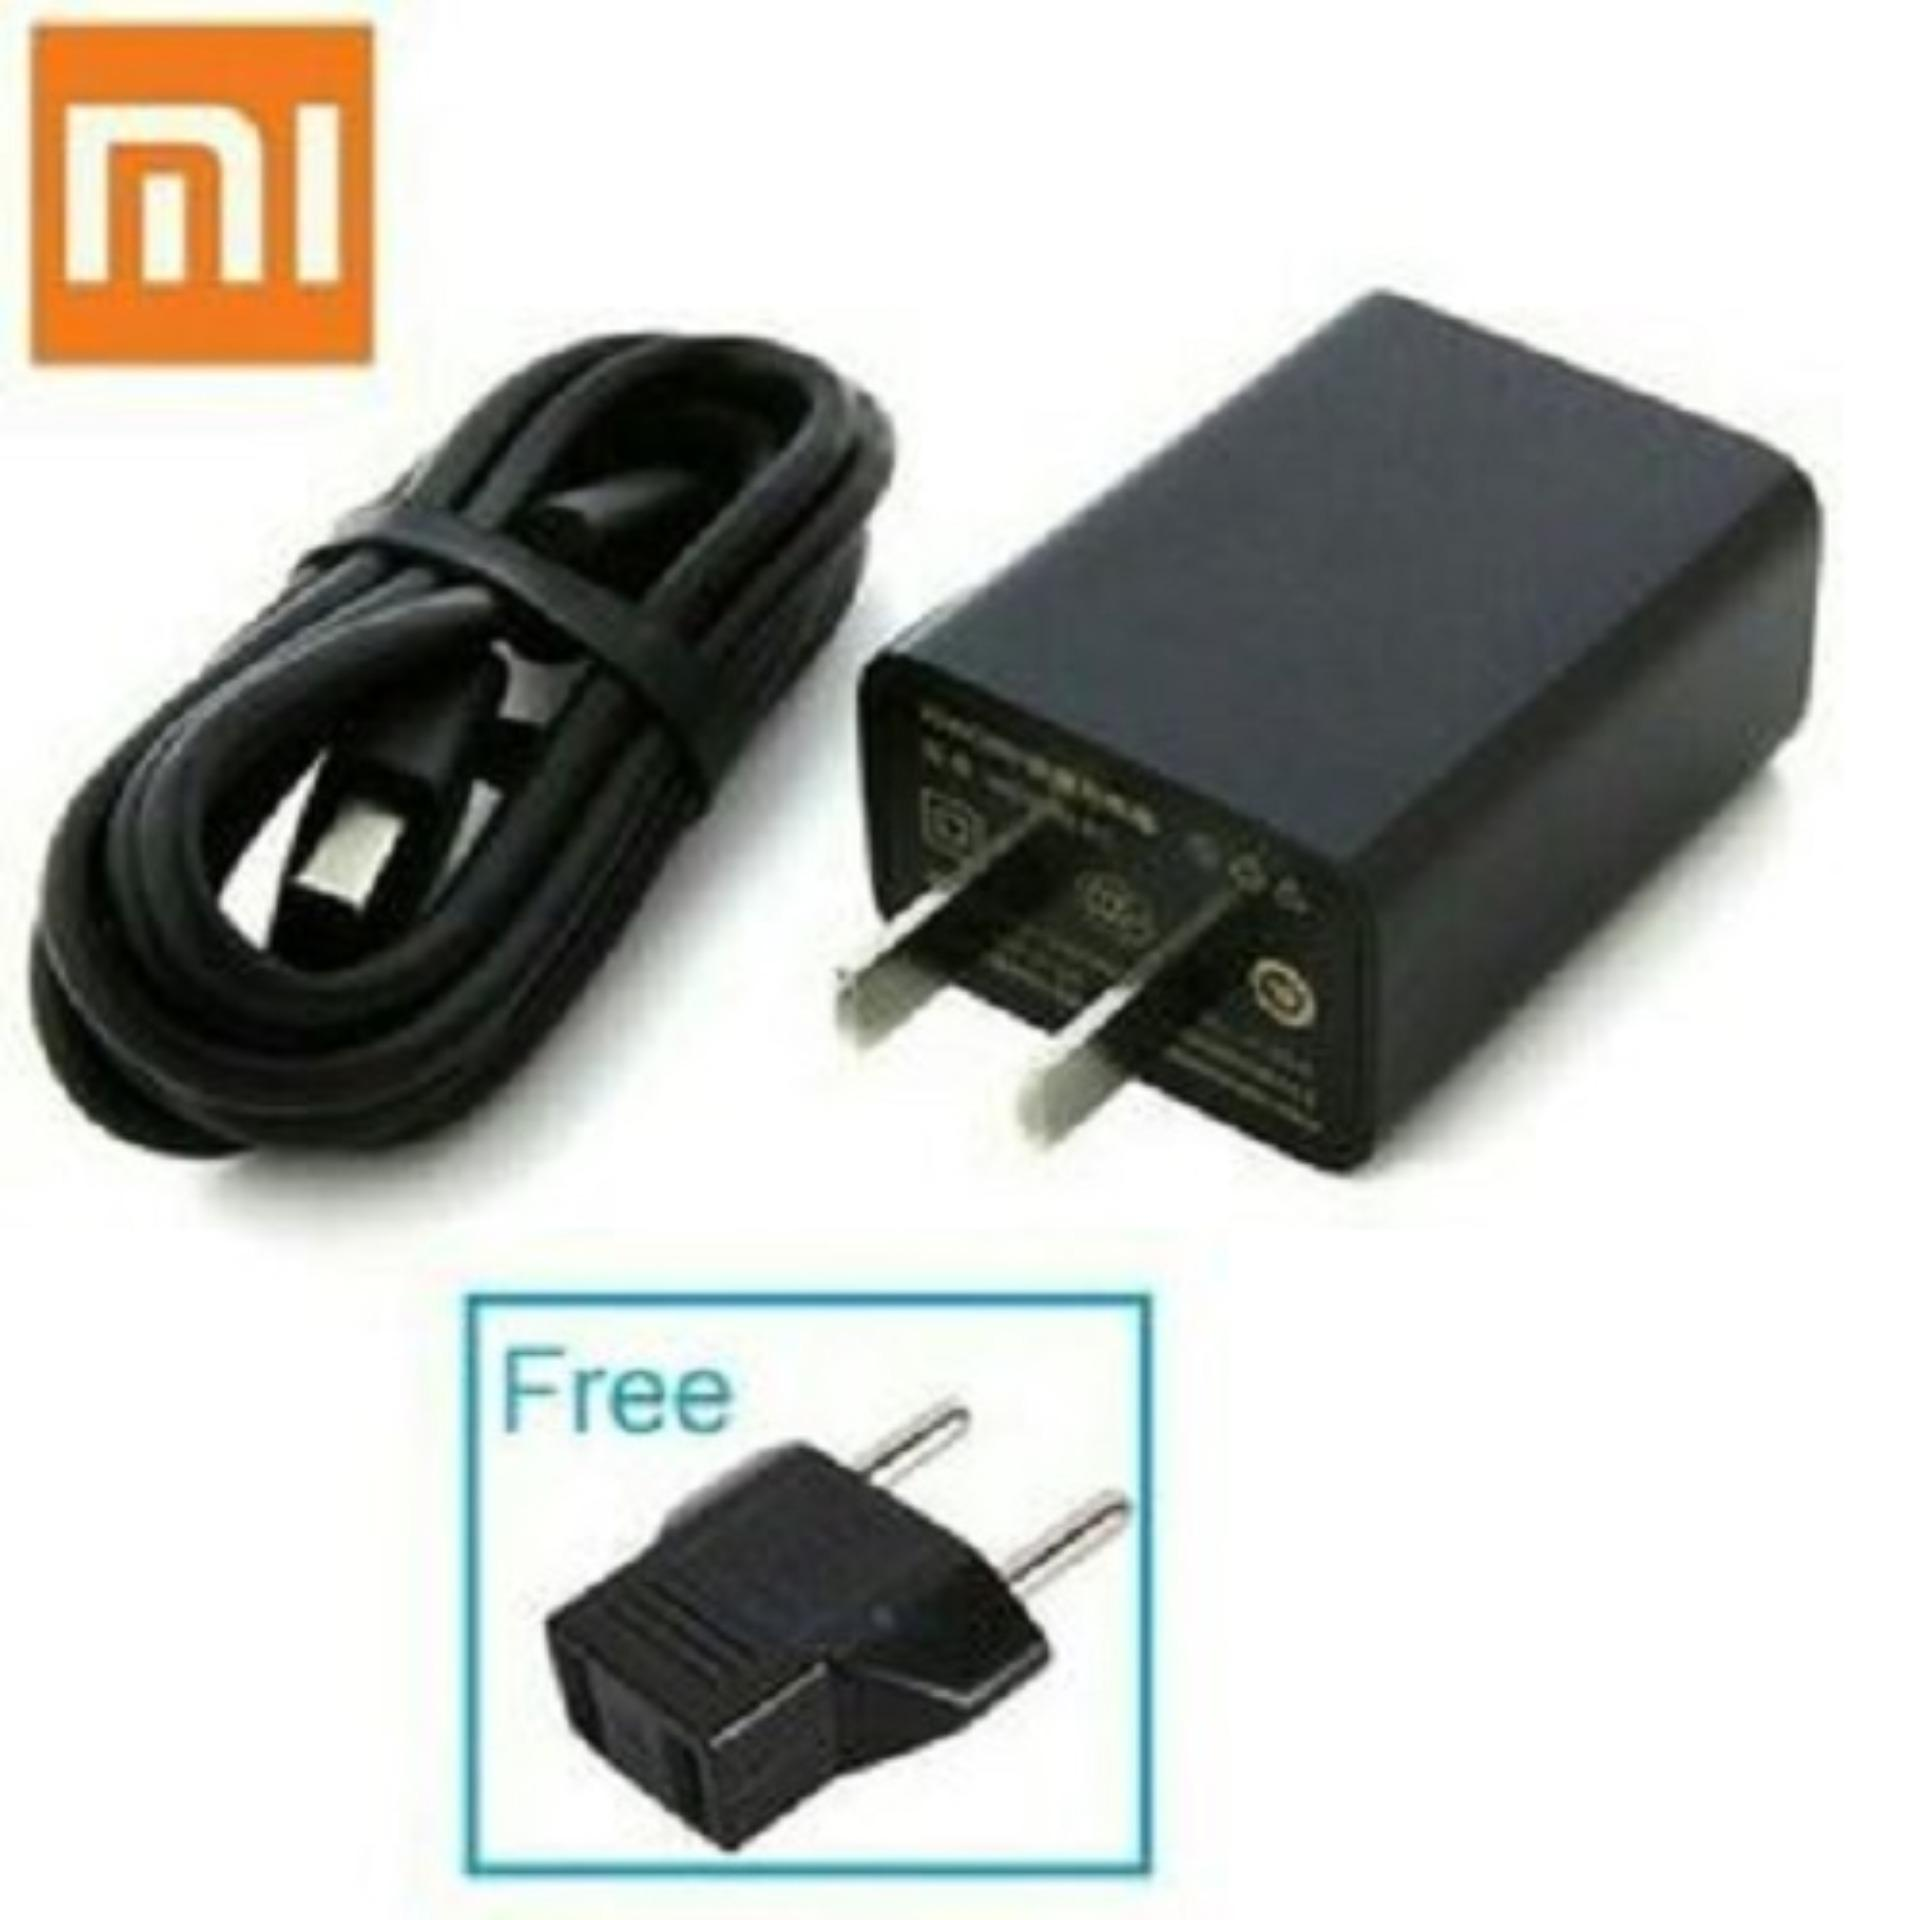 Charger For Xiaomi Redmi Note Micro USB 2A Charger - HITAM - bisa untuk Xiaomi Redmi Note 2 3 4 Max Redmi 1 1s 2 2A 3 3S Pro 4A 4 Prime 4X 5 Mi 1 1S Mi 2 2S Mi 3 Mi 4 4i 4c 4s Lenovo A2020 A1000 A7000 A6600 A6000 A5000 K800 K900 VIBE SHOT